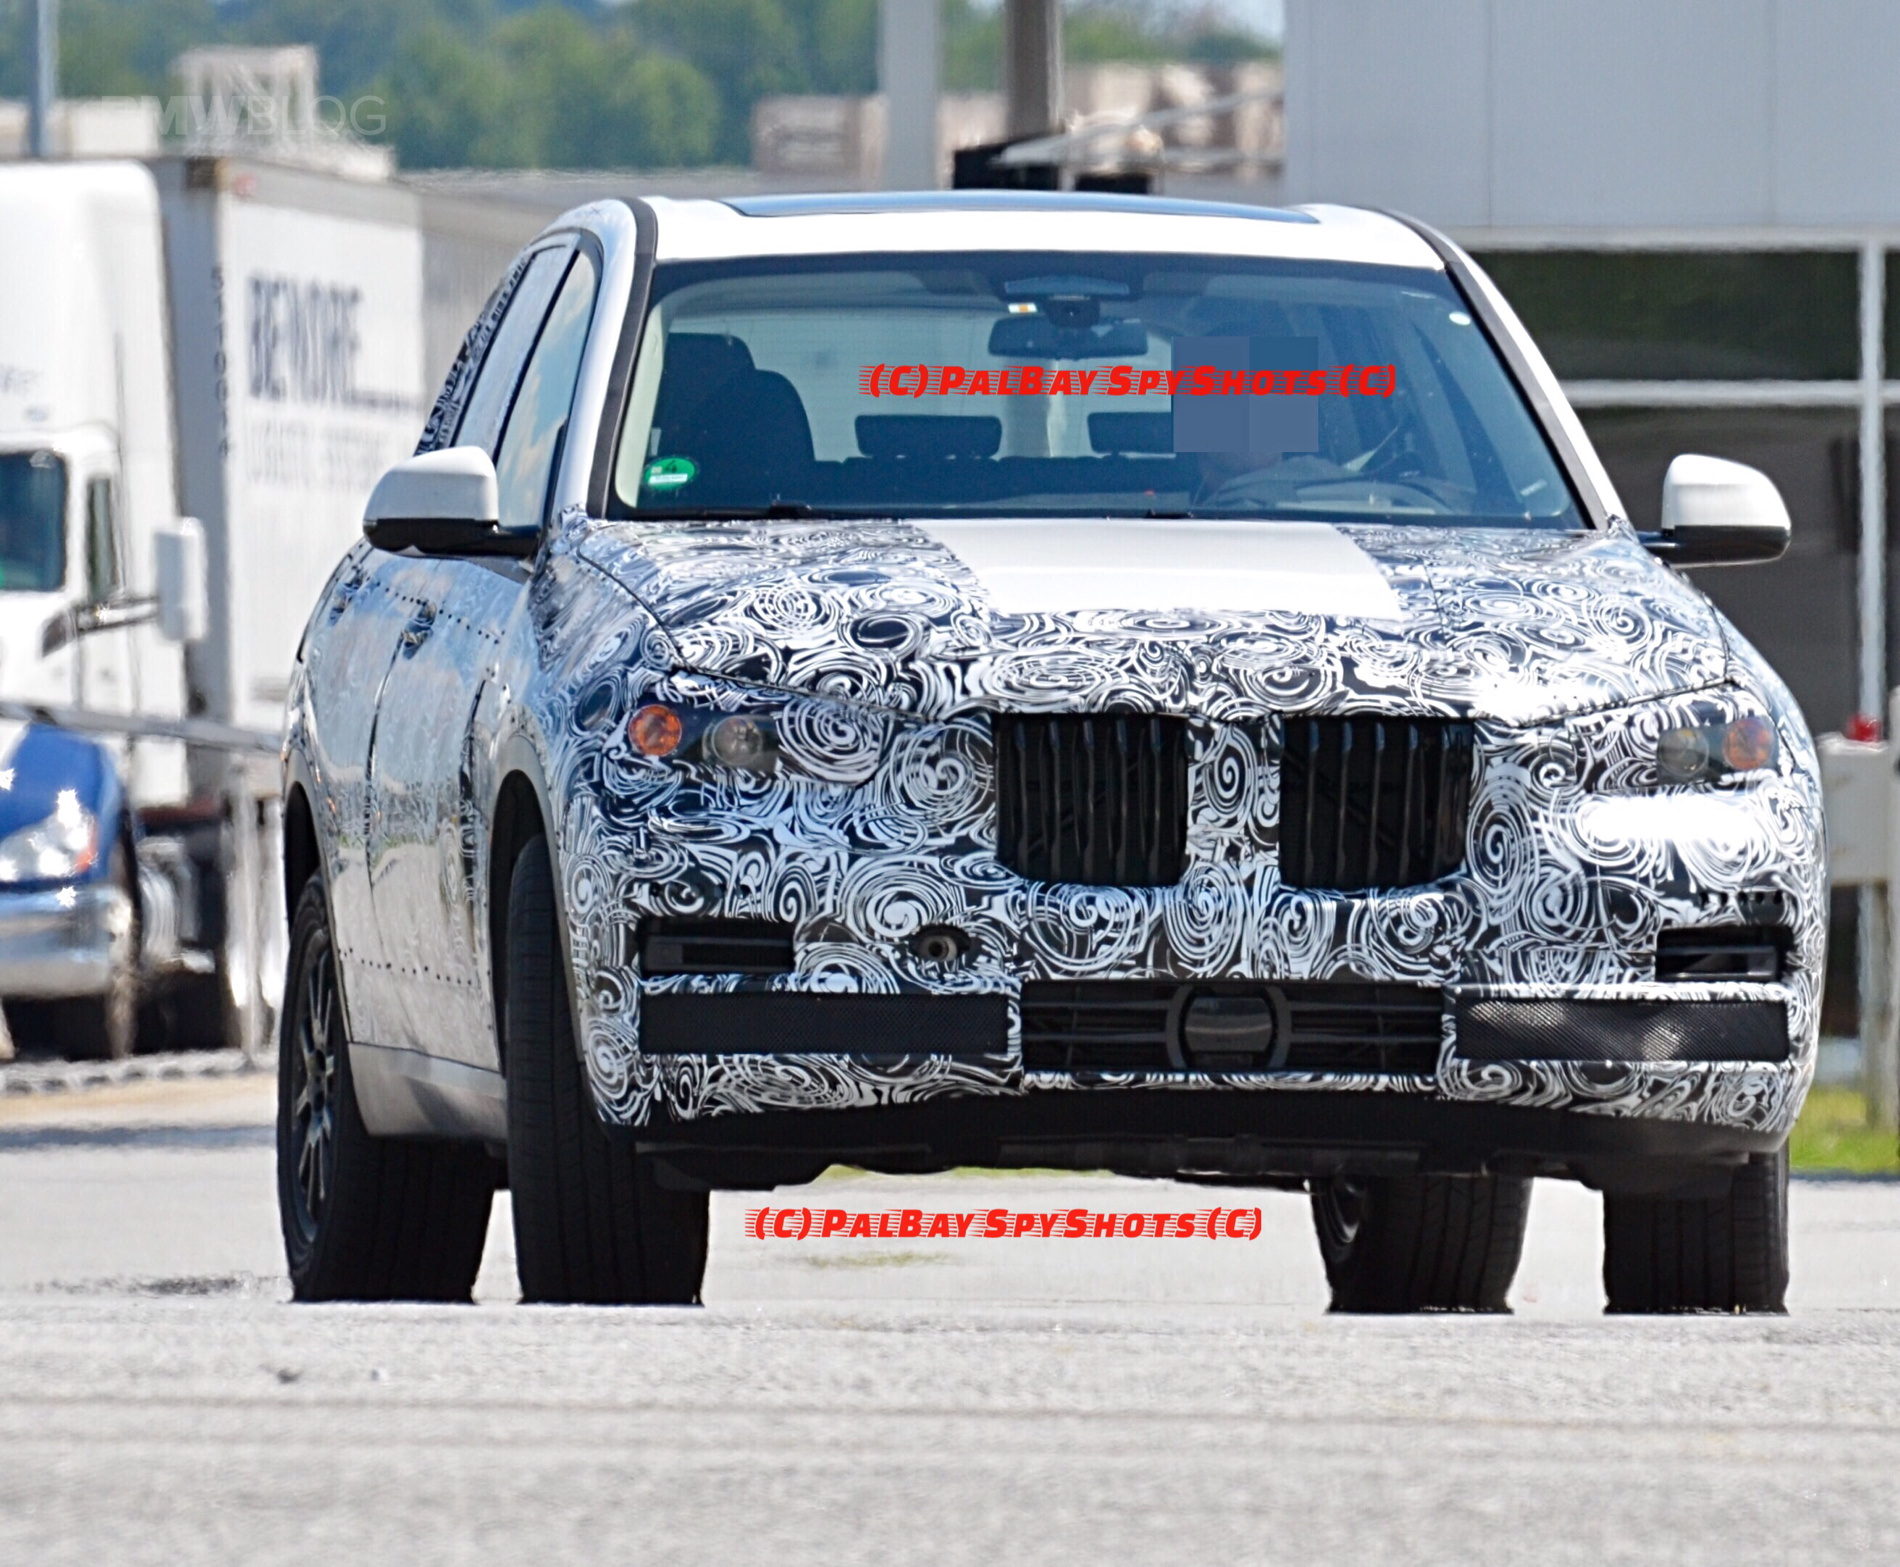 Upcoming G05 BMW X5 spotted in South Carolina on bmw 2 series, bmw x10, bmw 760i, bmw xs, bmw 7 series, bmw x8, bmw z3, bmw x6m, bmw x9, bmw x4, bmw m3, bmw m6, bmw q5, bmw x3, bmw 528 i, bmw i8, bmw 5 series, bmw crossover, bmw x7, bmw 3 series,